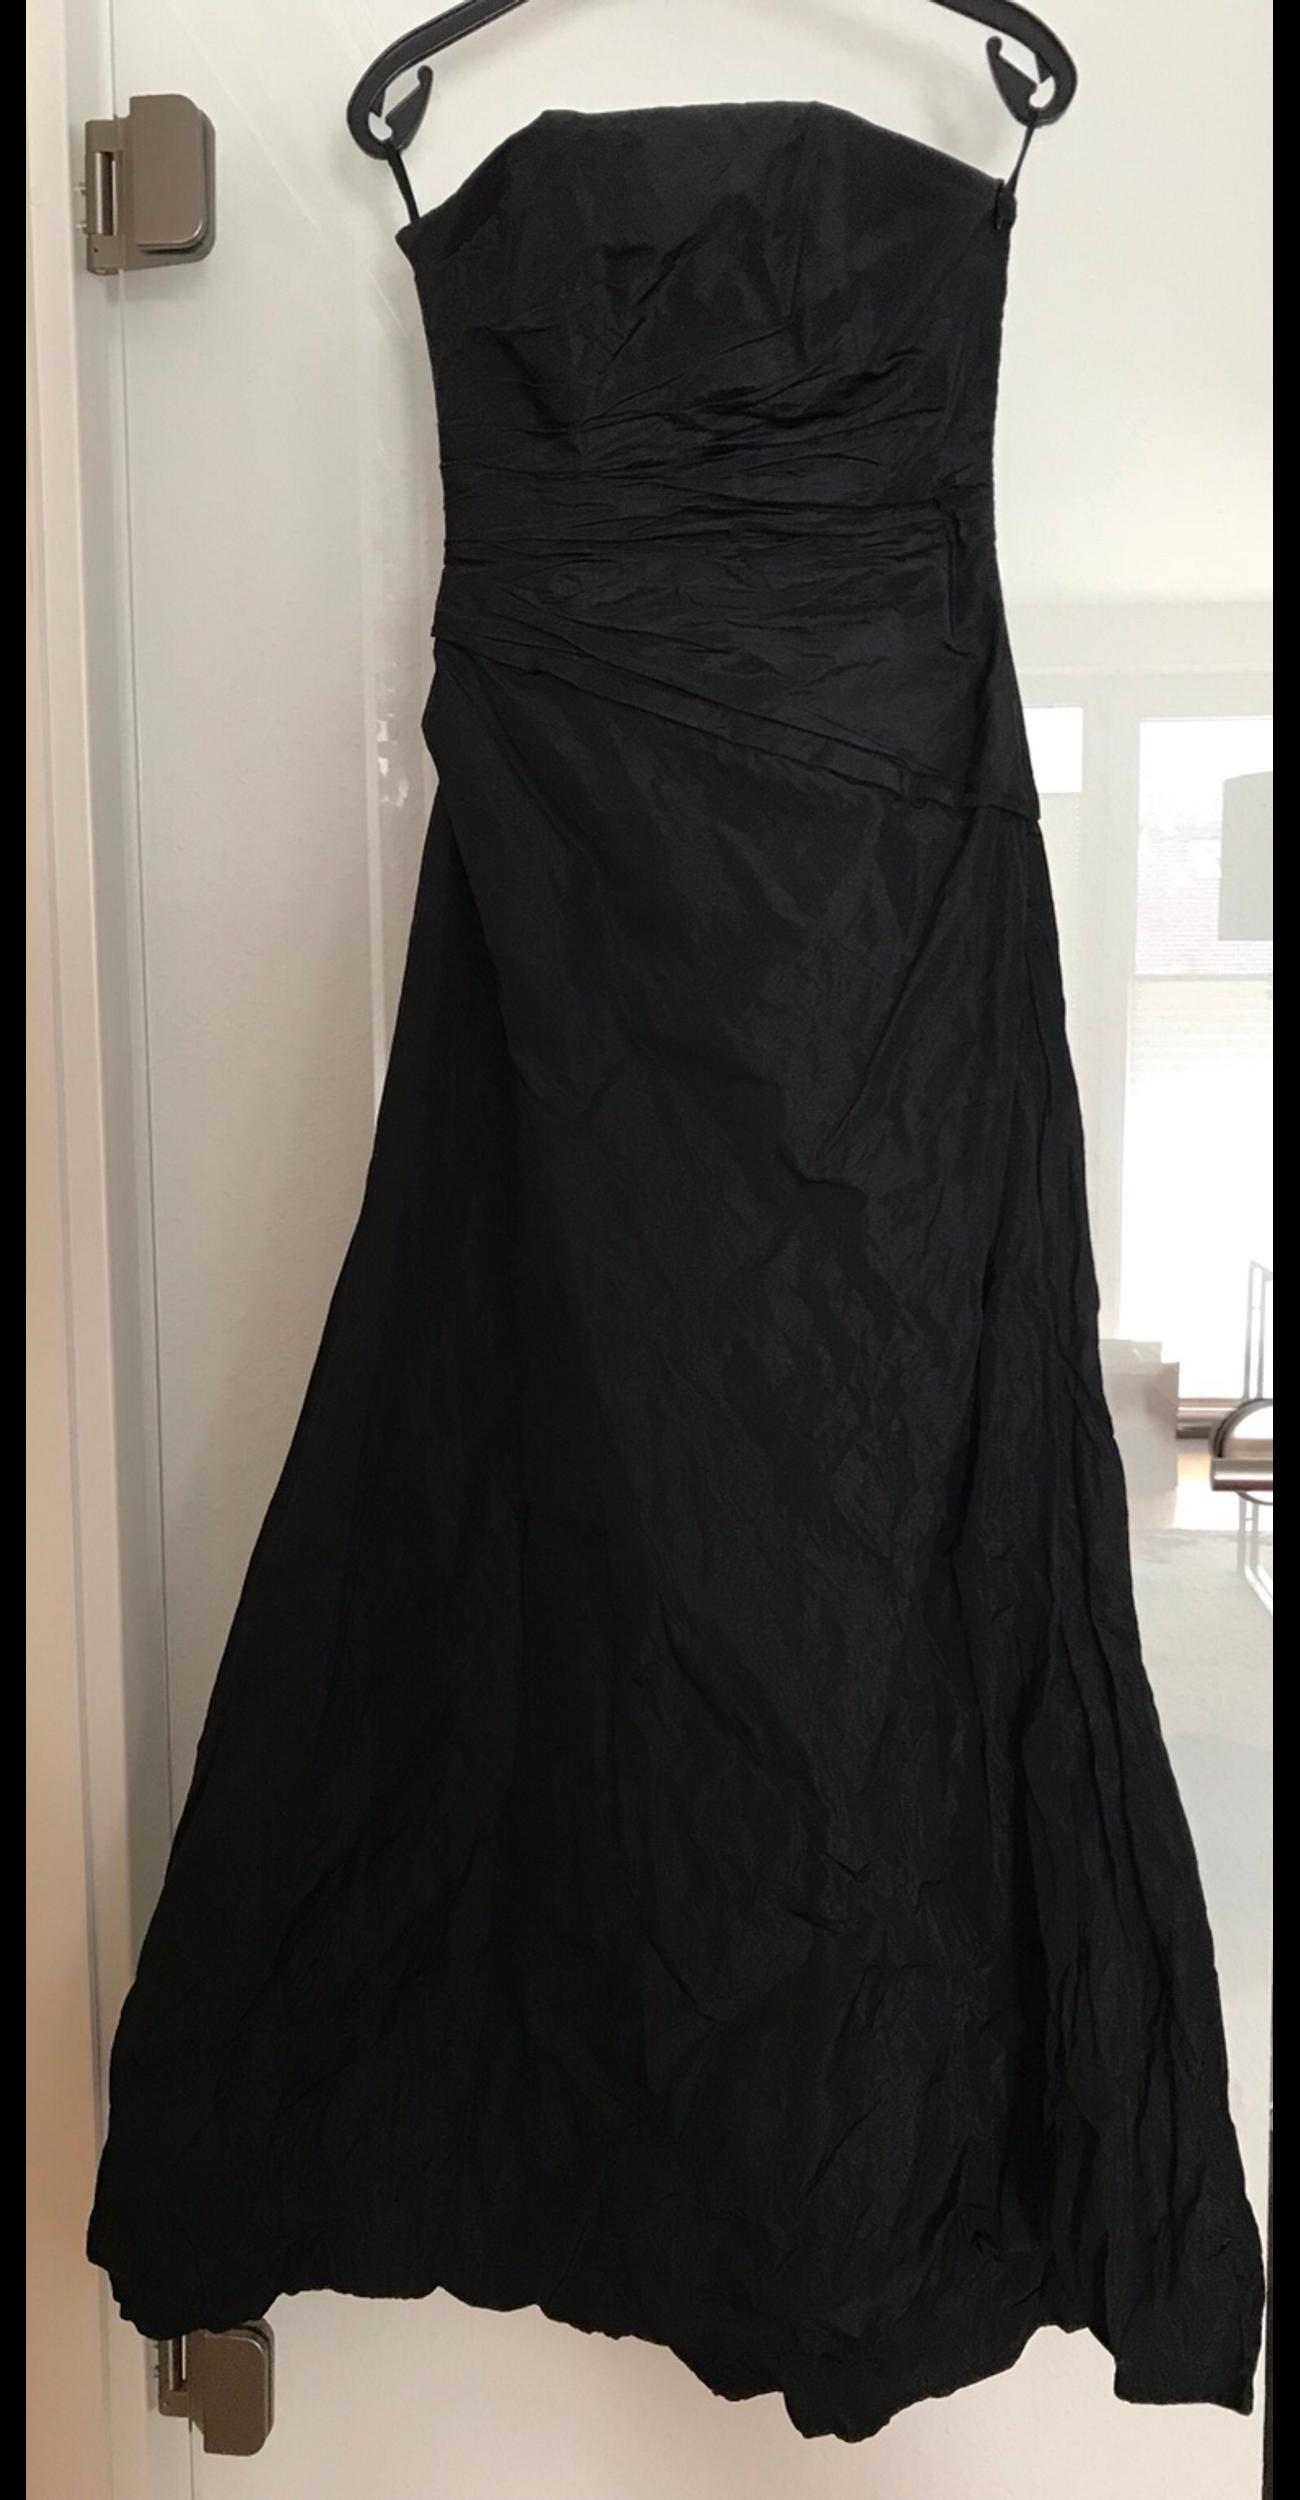 Abendkleid lang schwarz ärmellos in 10 Bremen for €10.10 for